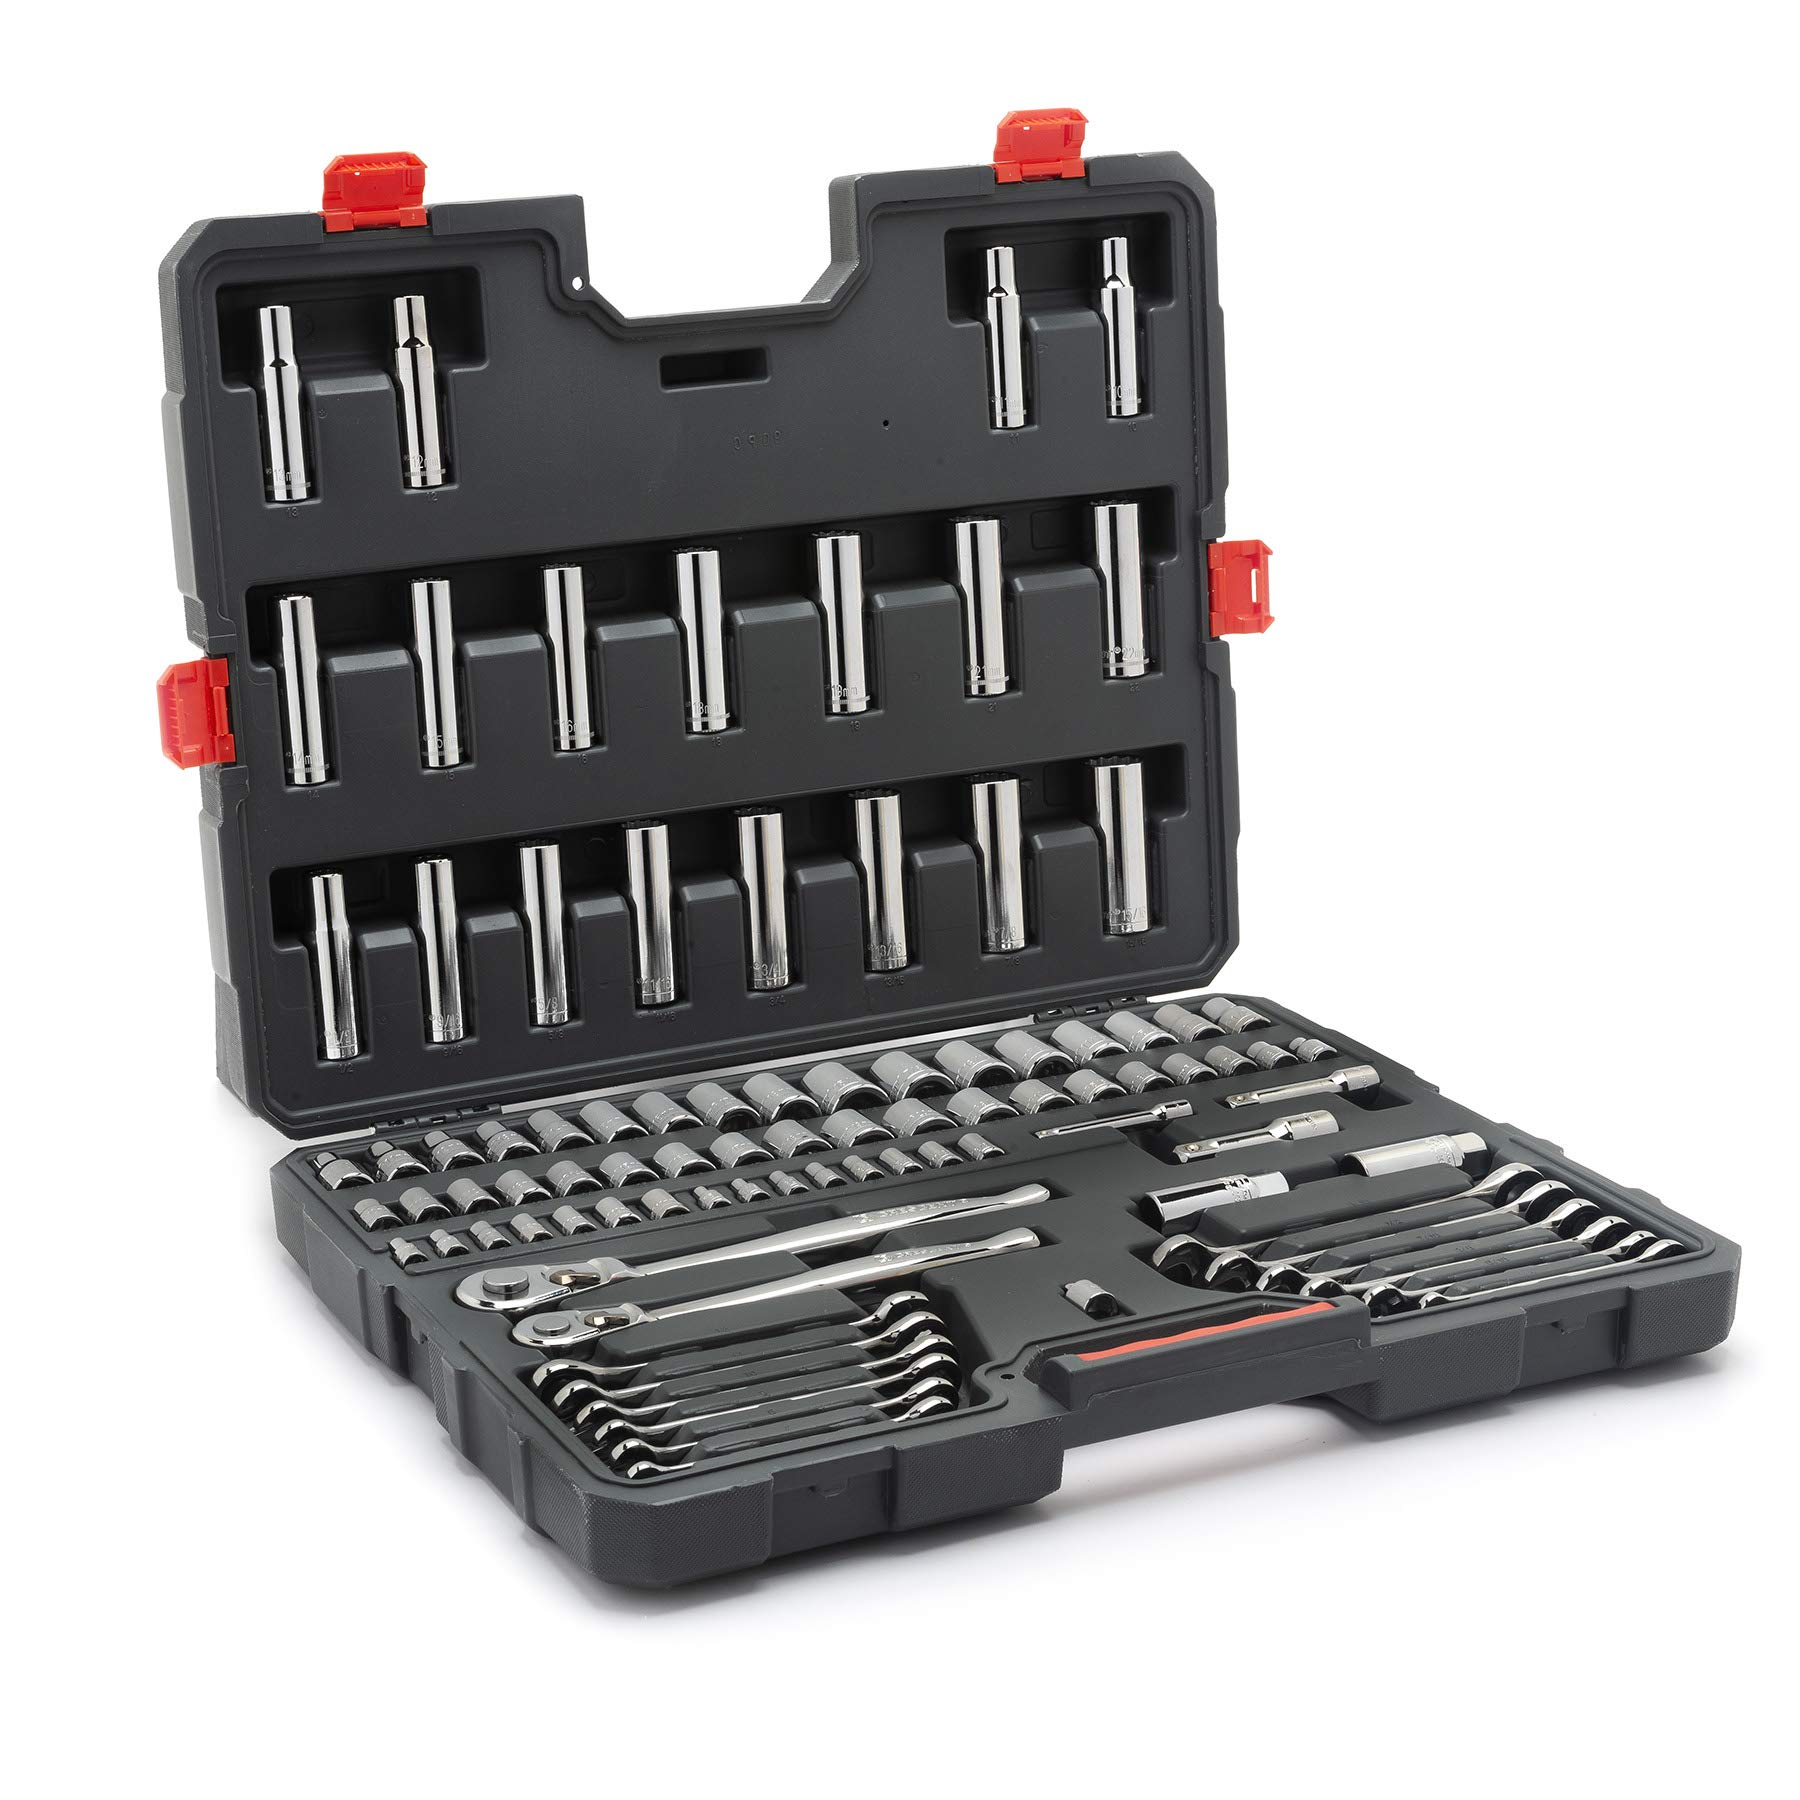 Crescent 90 Piece Mechanics Tool Set with Ratcheting Wrenches, SAE & Metric -  CTK90 by Crescent